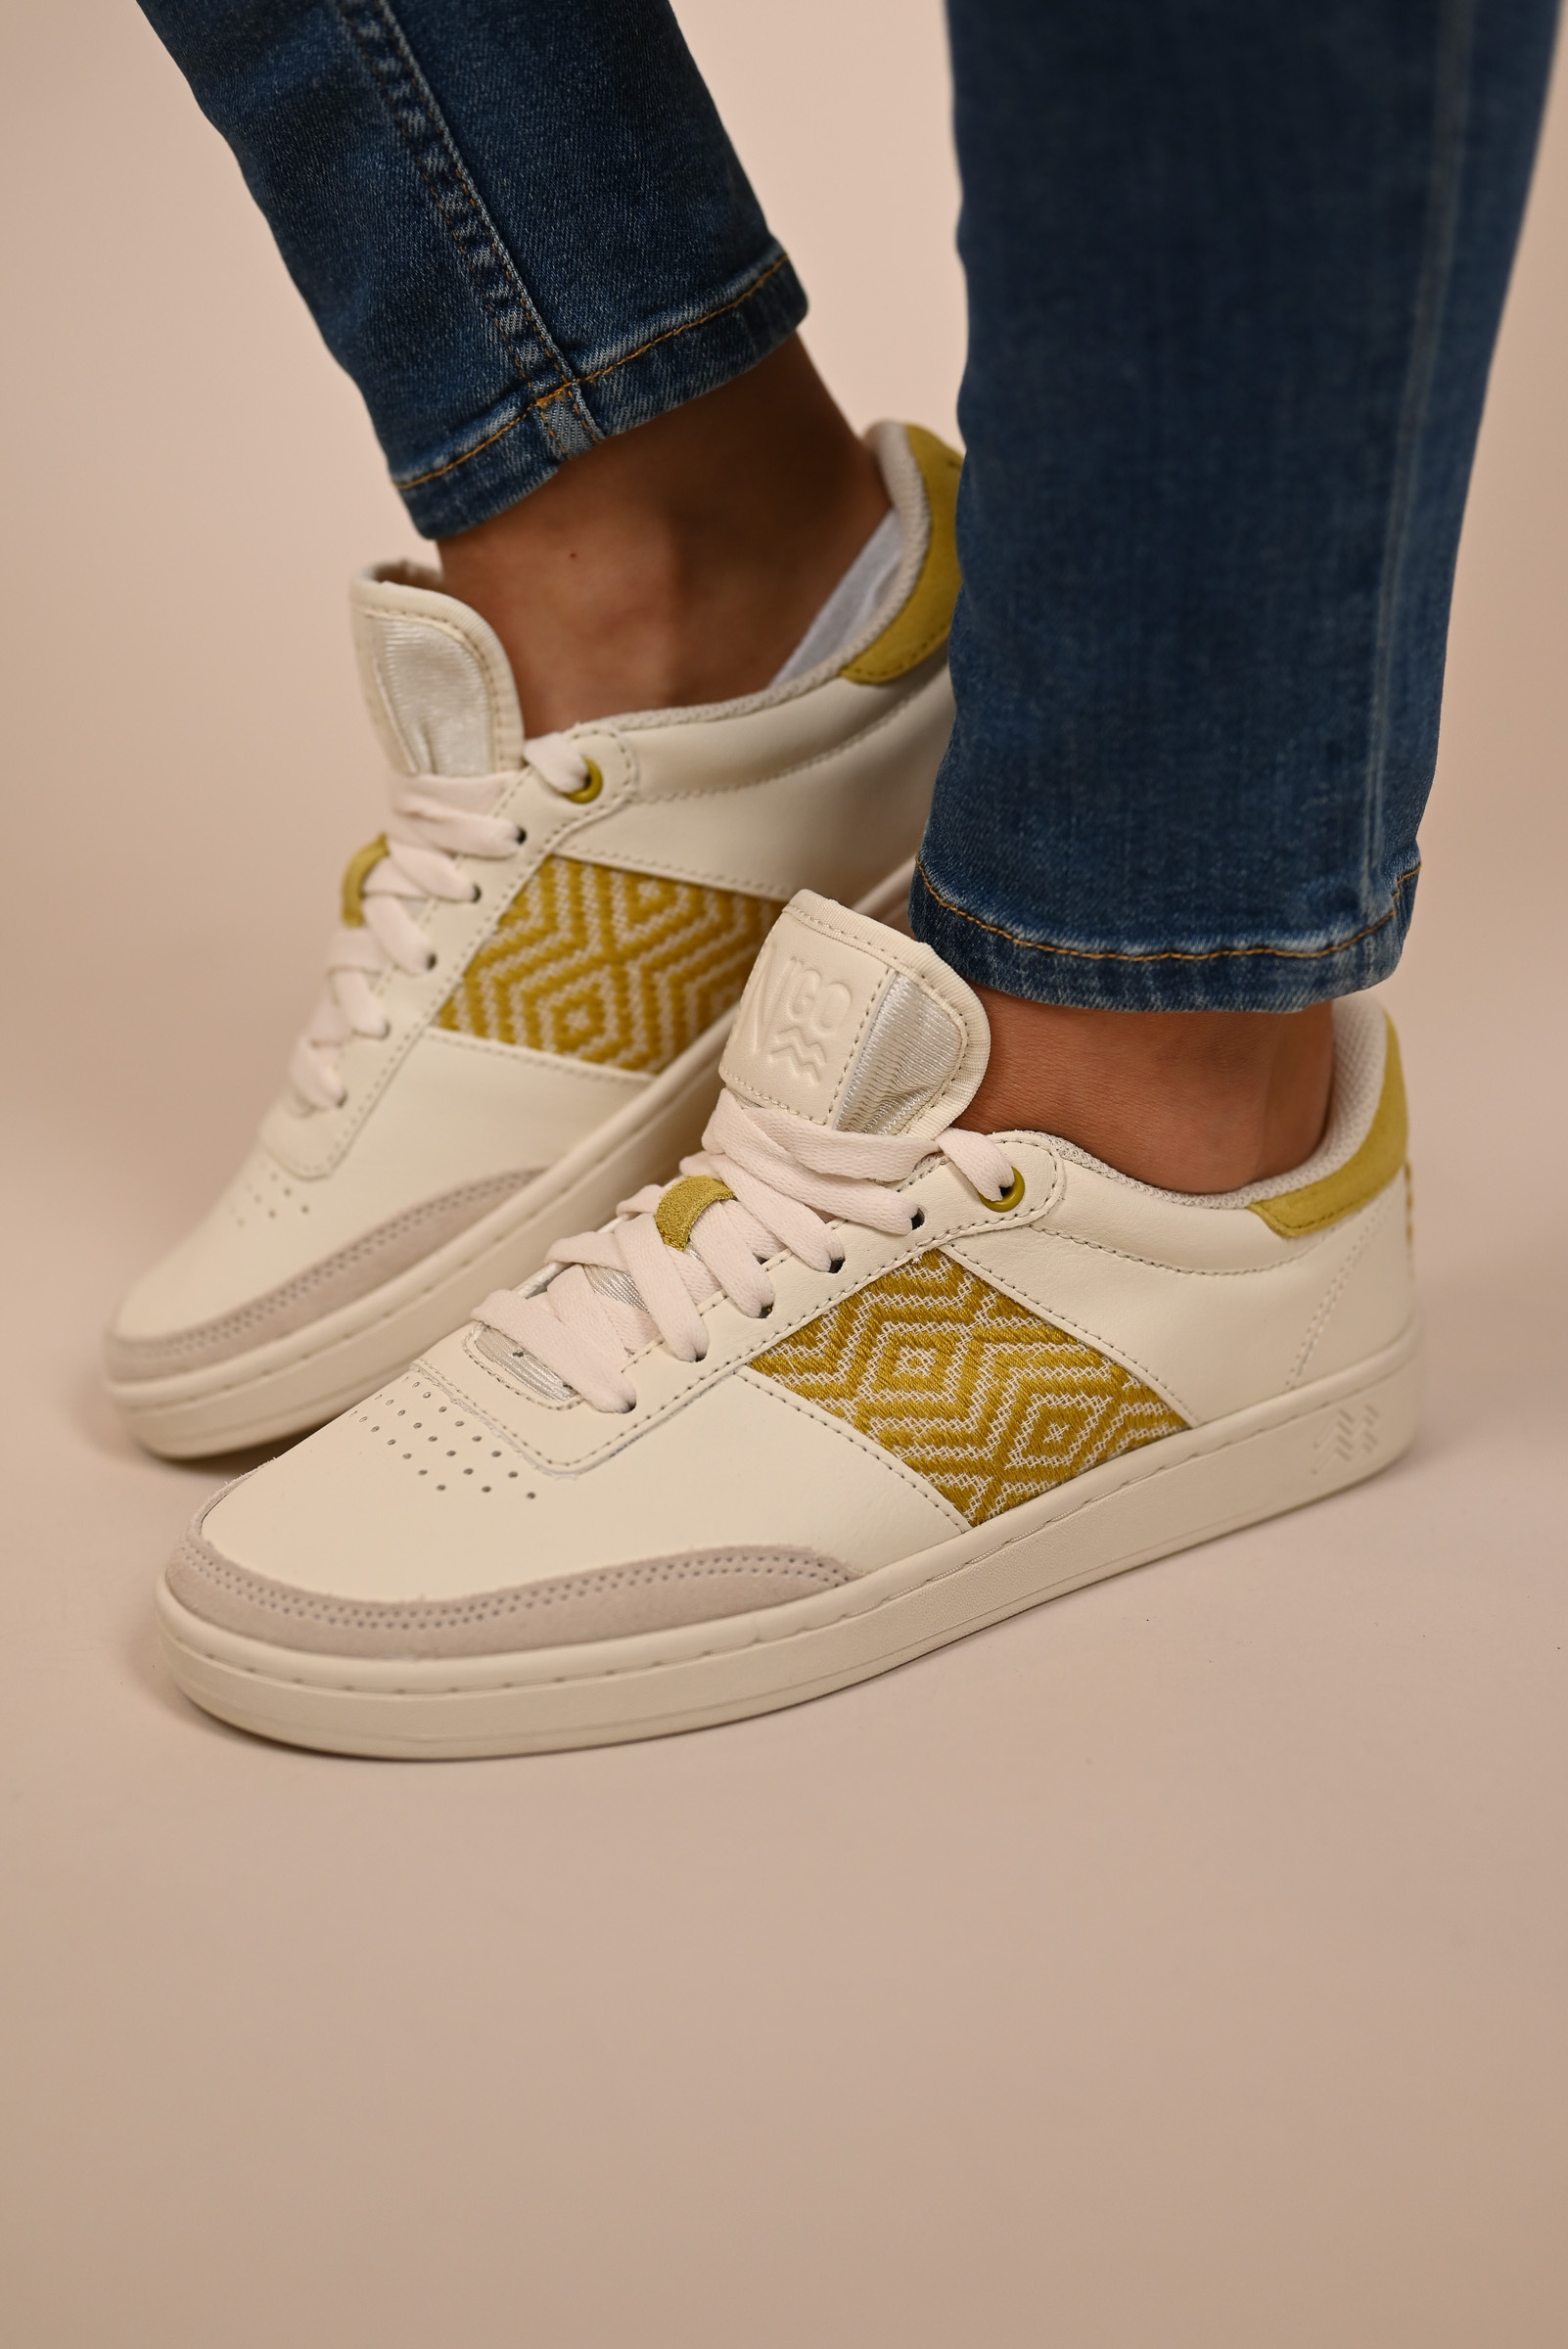 N'GO Sneaker HA GIANG  cream/yellow